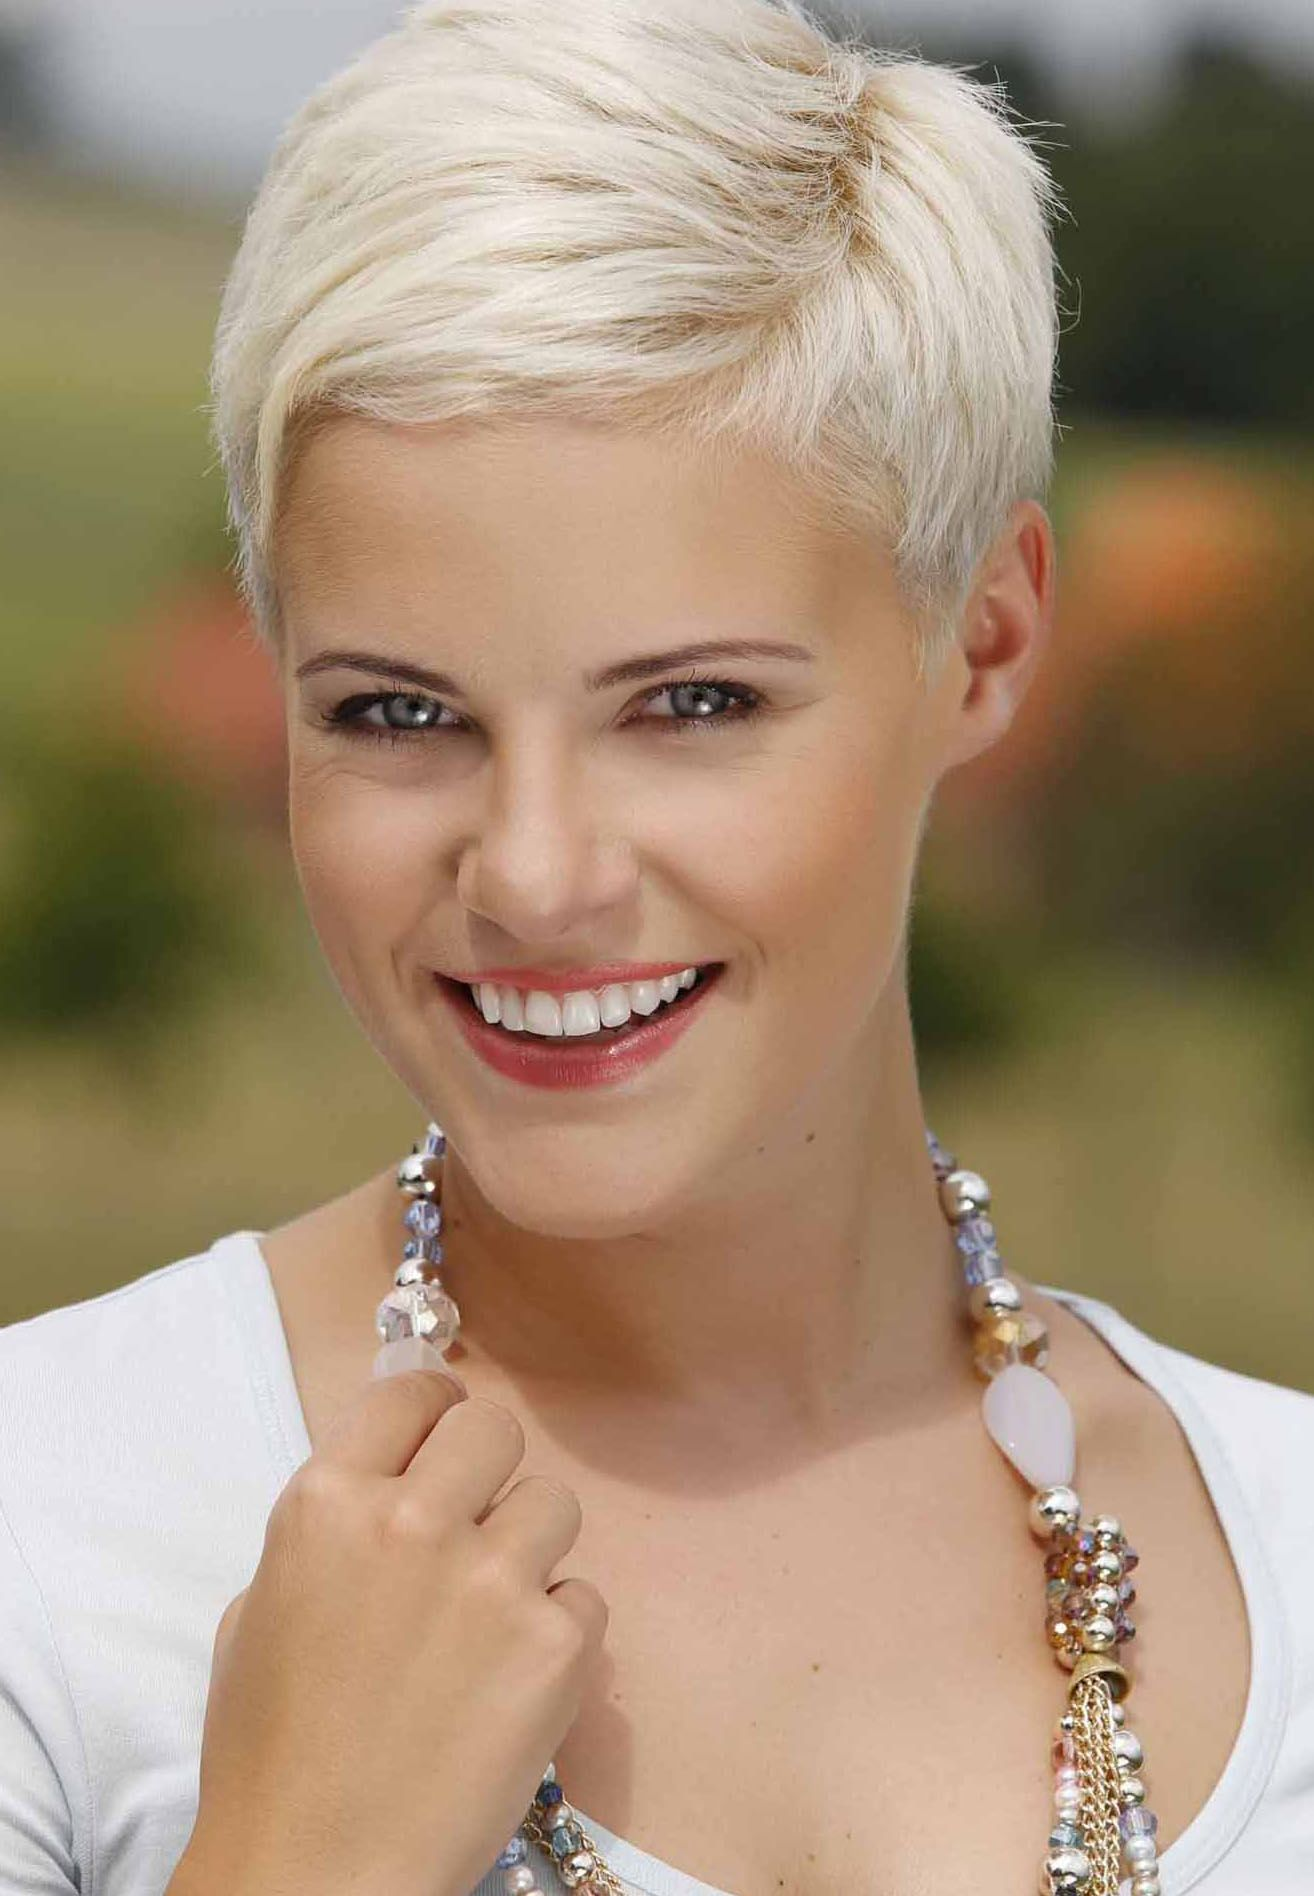 Short blonde haircuts hairstyles most popular hair styles